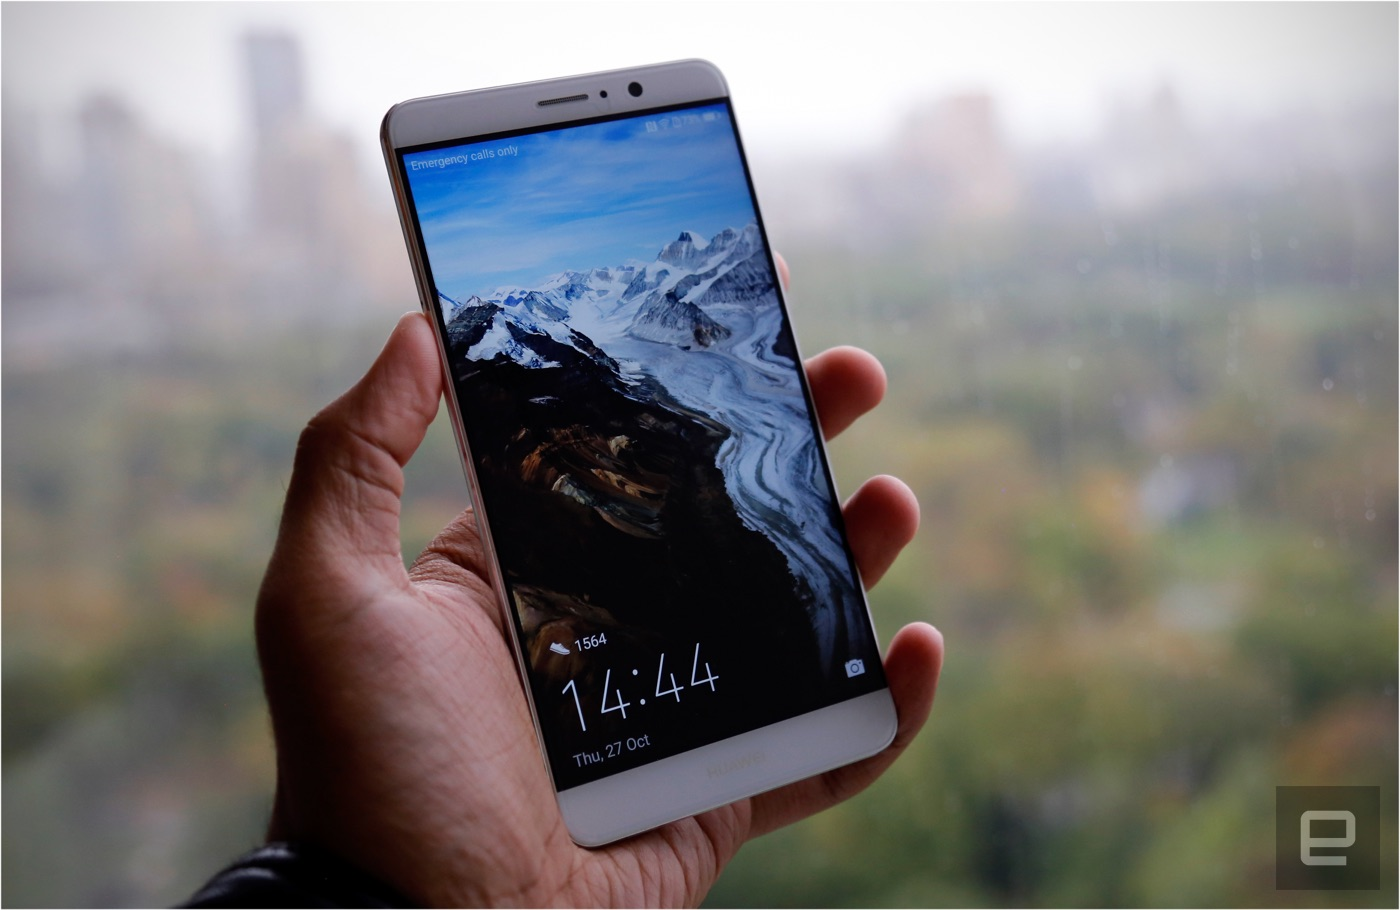 Huawei's new Mate 9 wants to be a smarter kind of smartphone